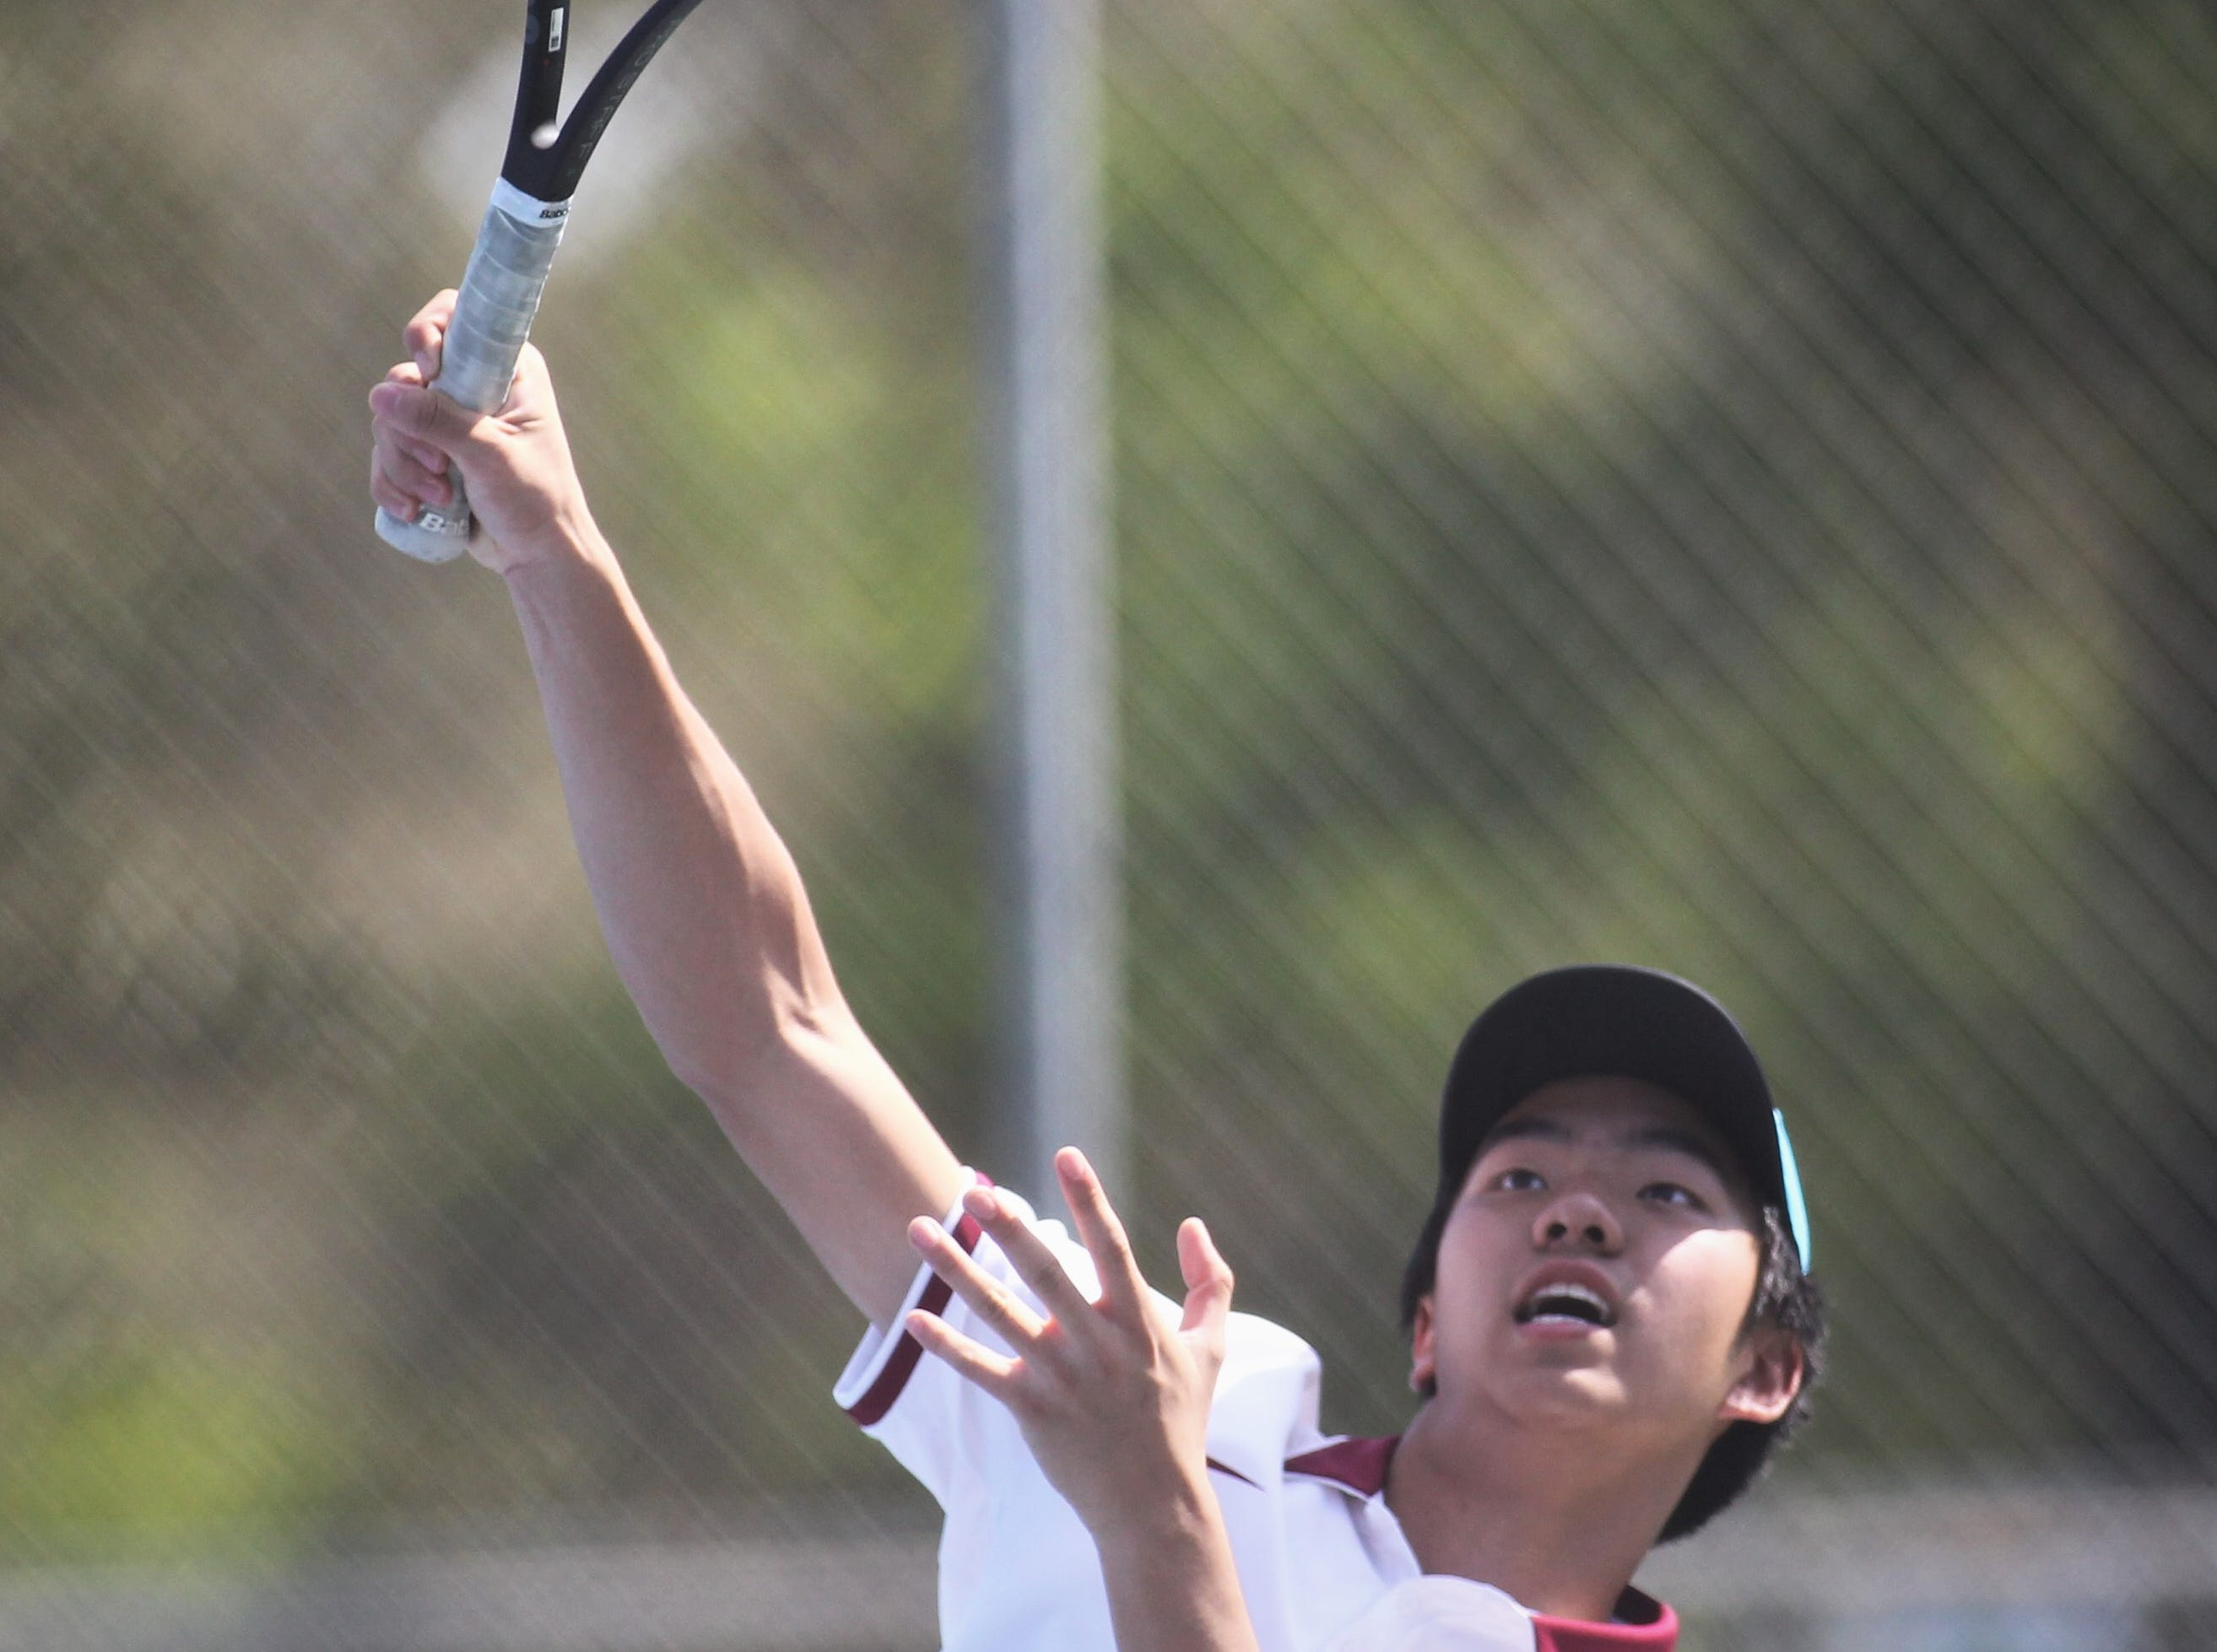 Chiles freshman Brighton Jiang hits a shot during the boys and girls tennis 2019 City Tournament at Tom Brown Park on March 12, 2019.